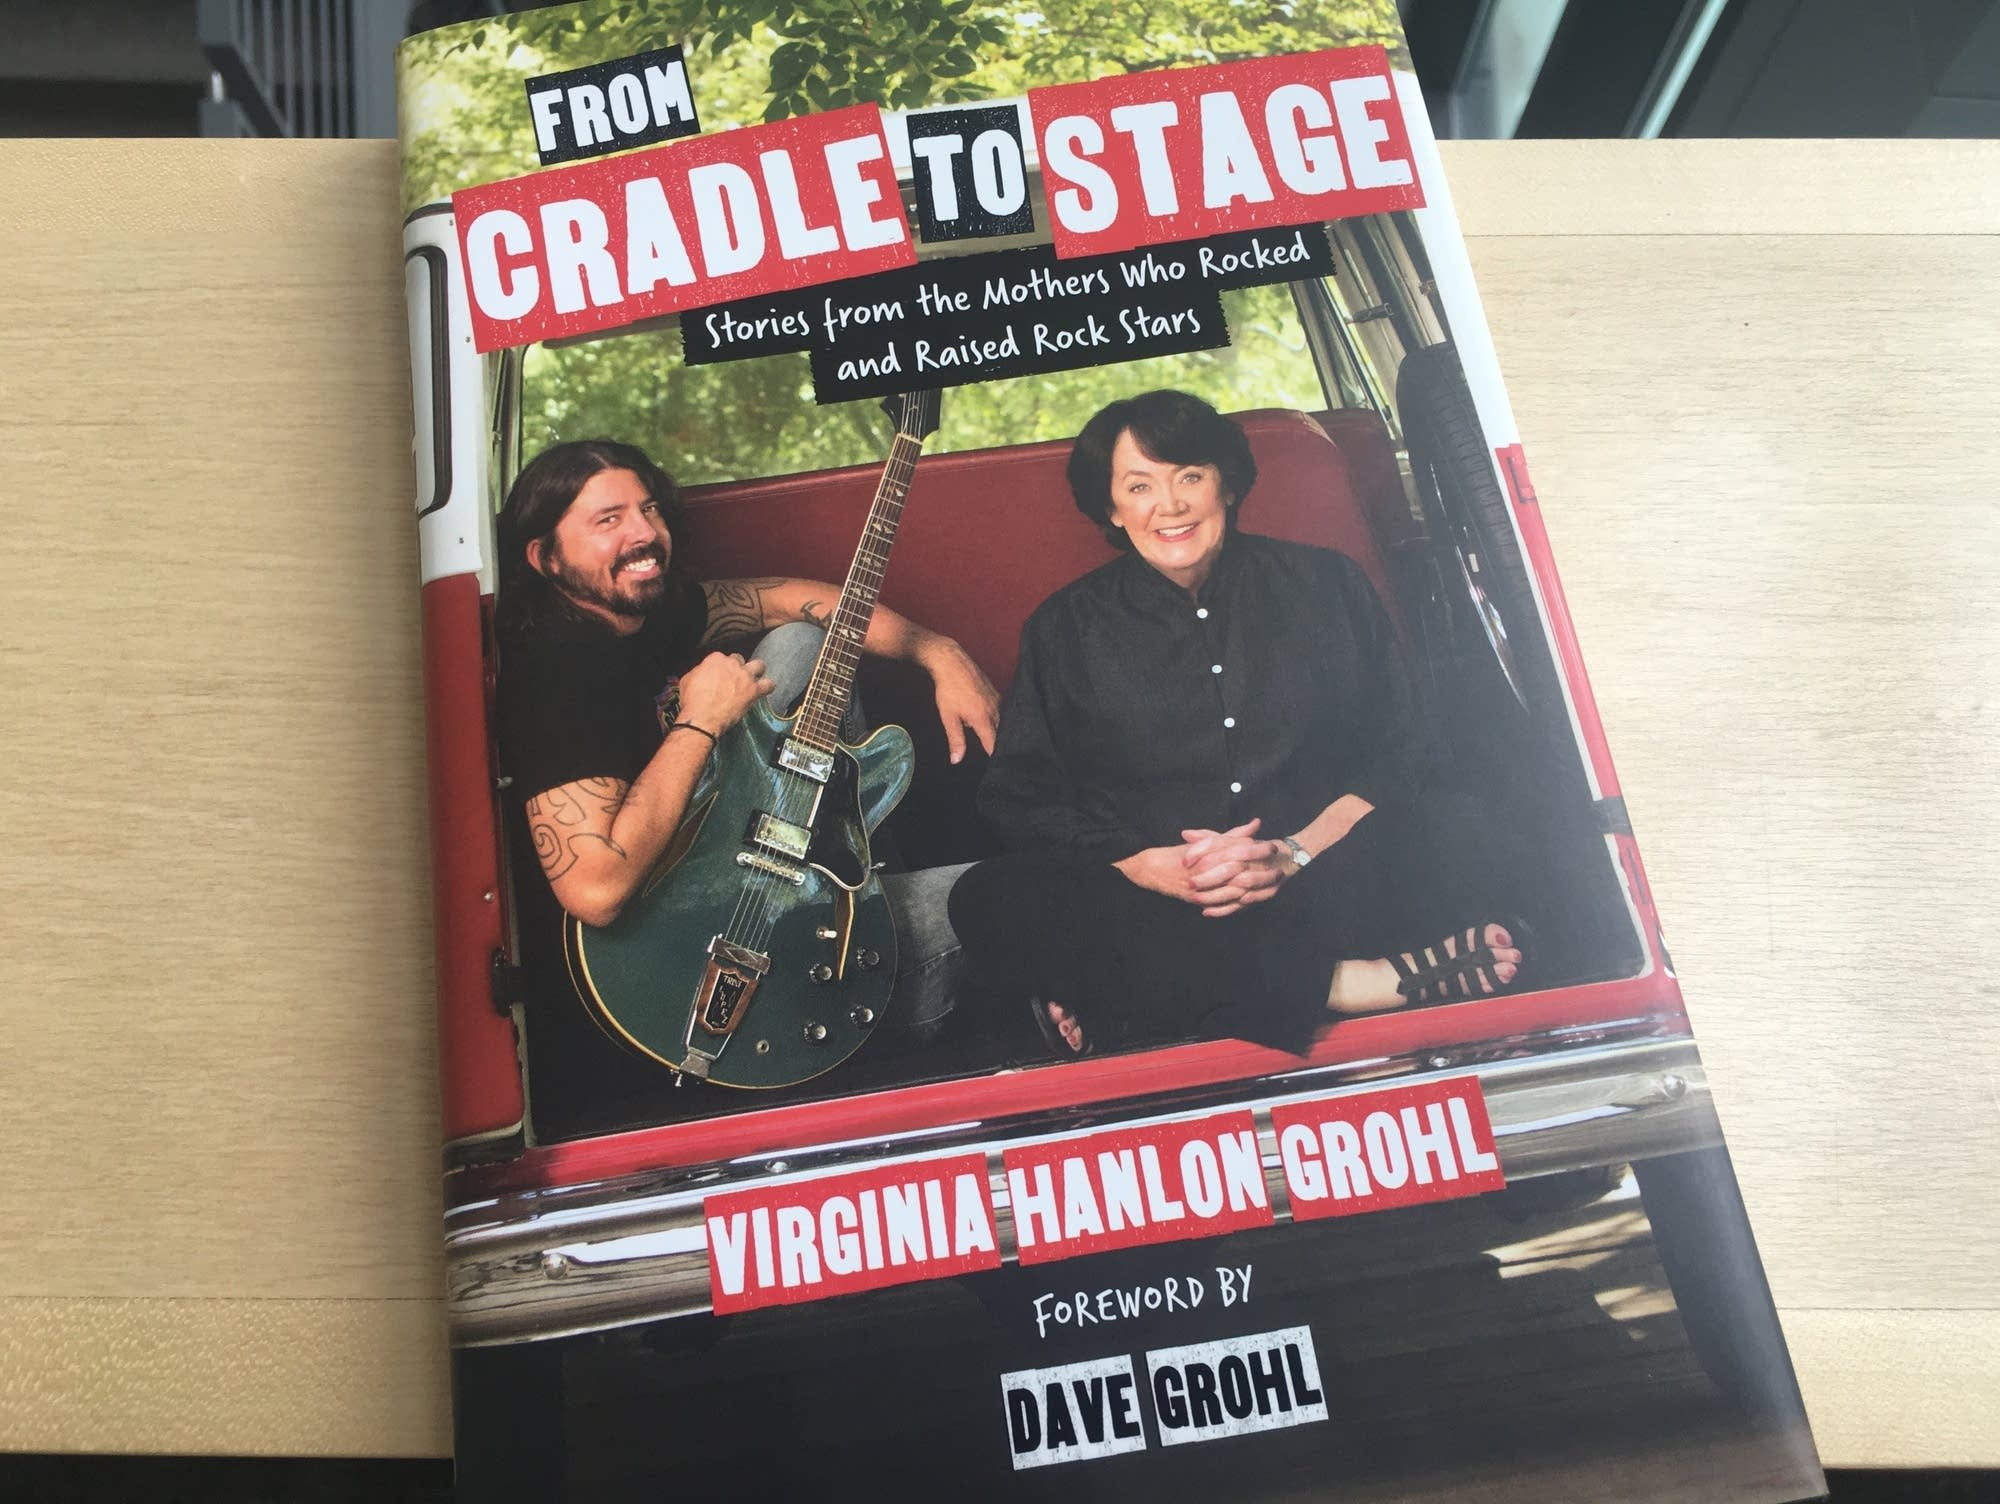 Virginia Hanlon Grohl's 'From Cradle to Stage.'